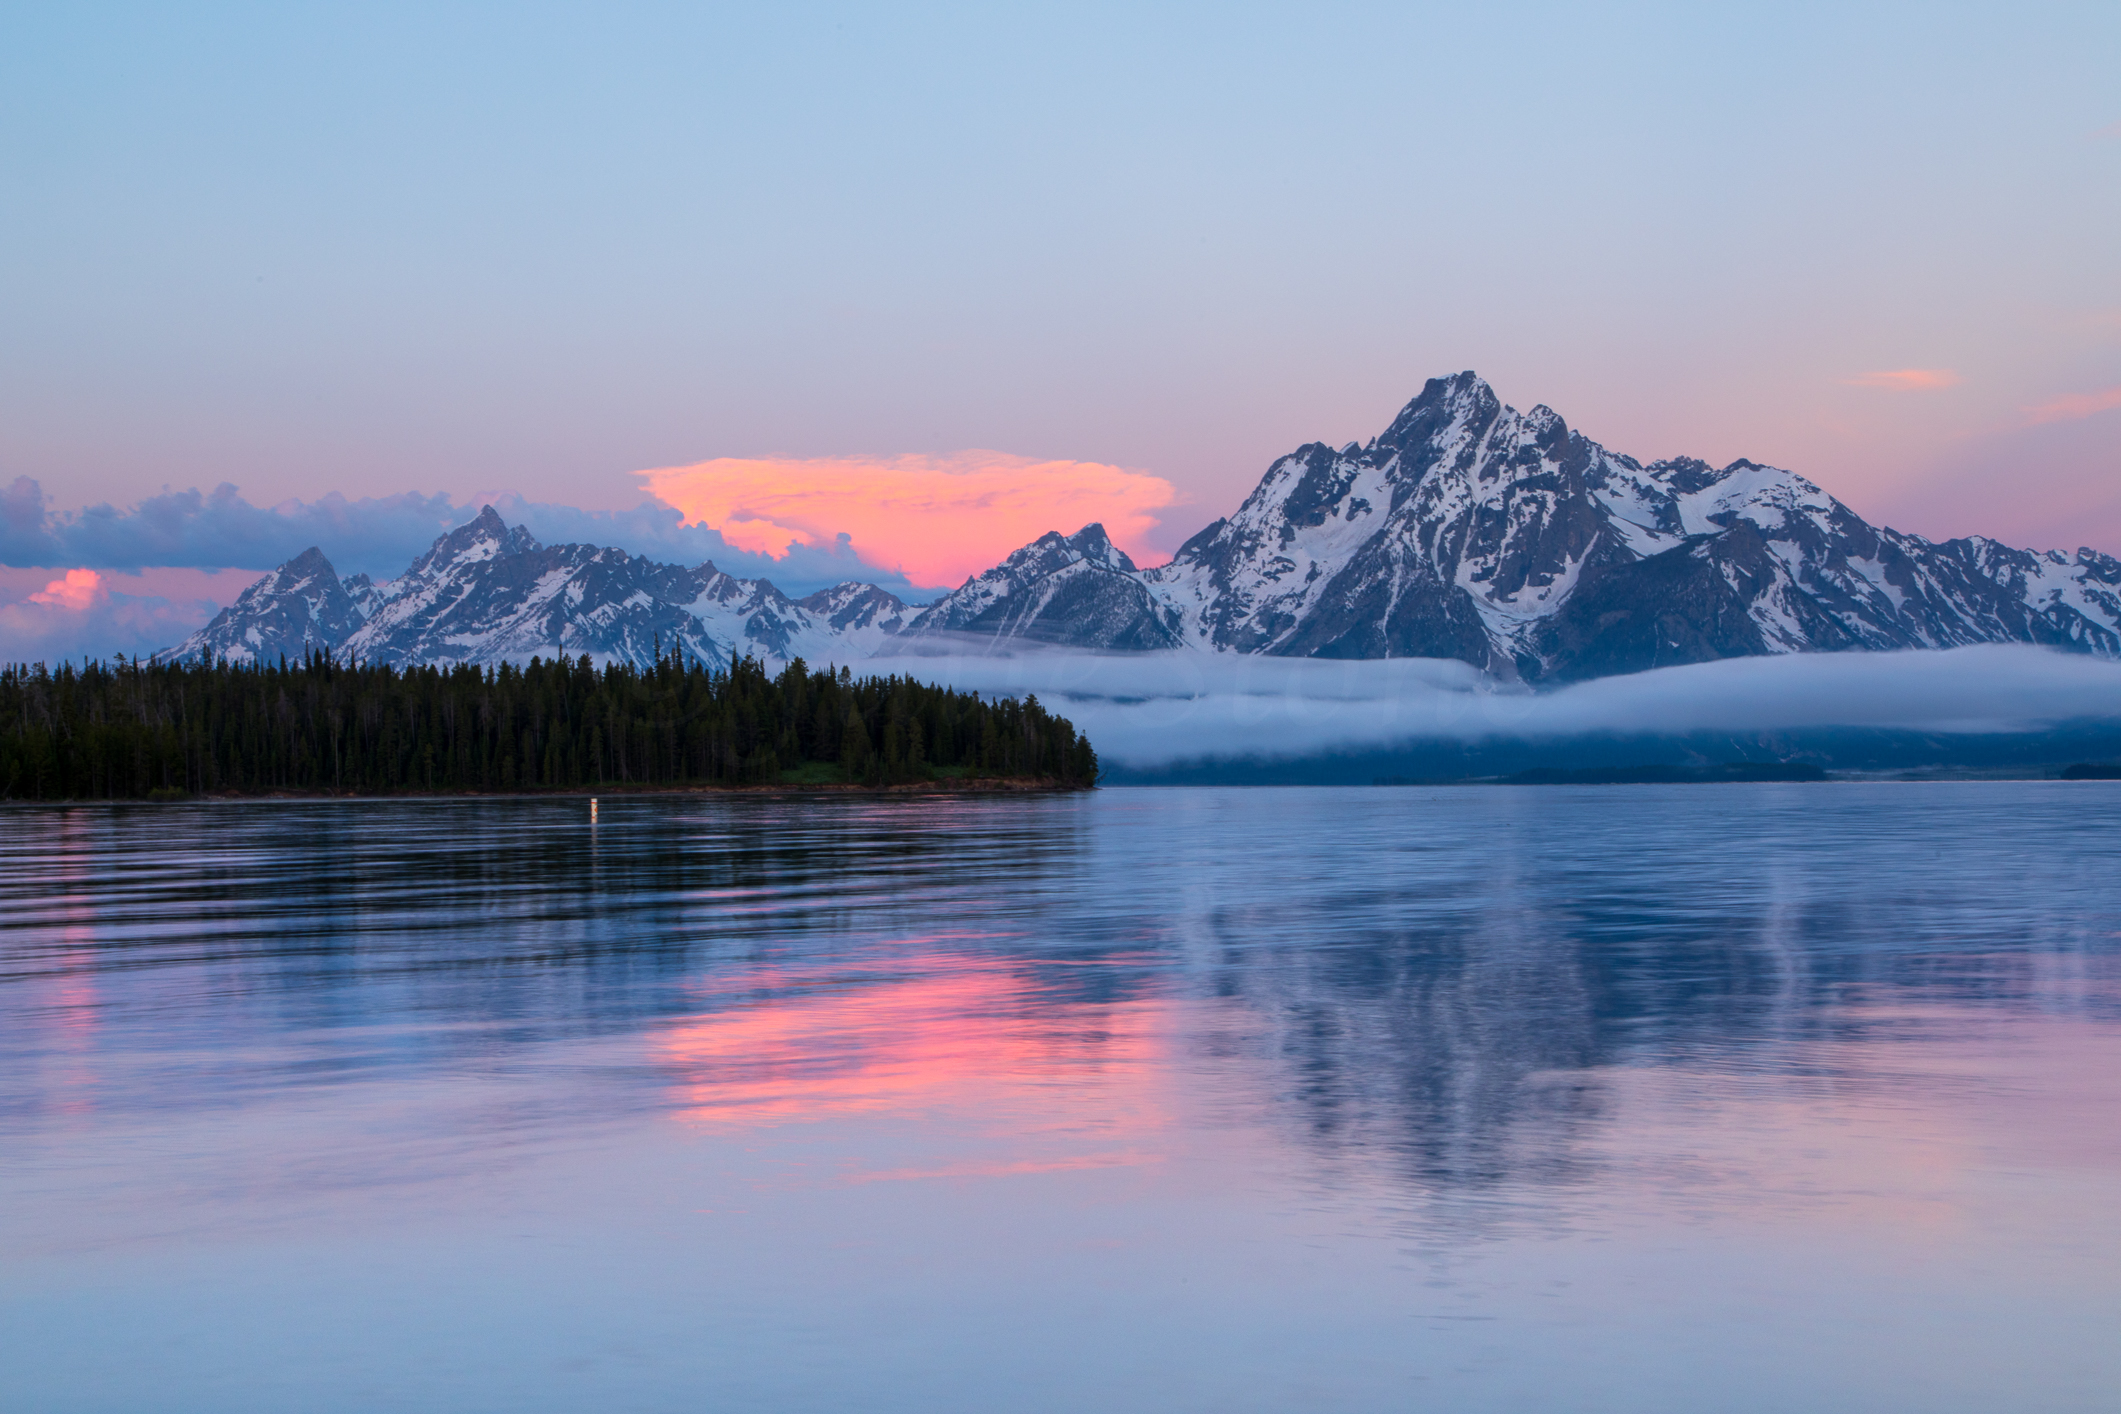 Colter Bay, Image # 3899